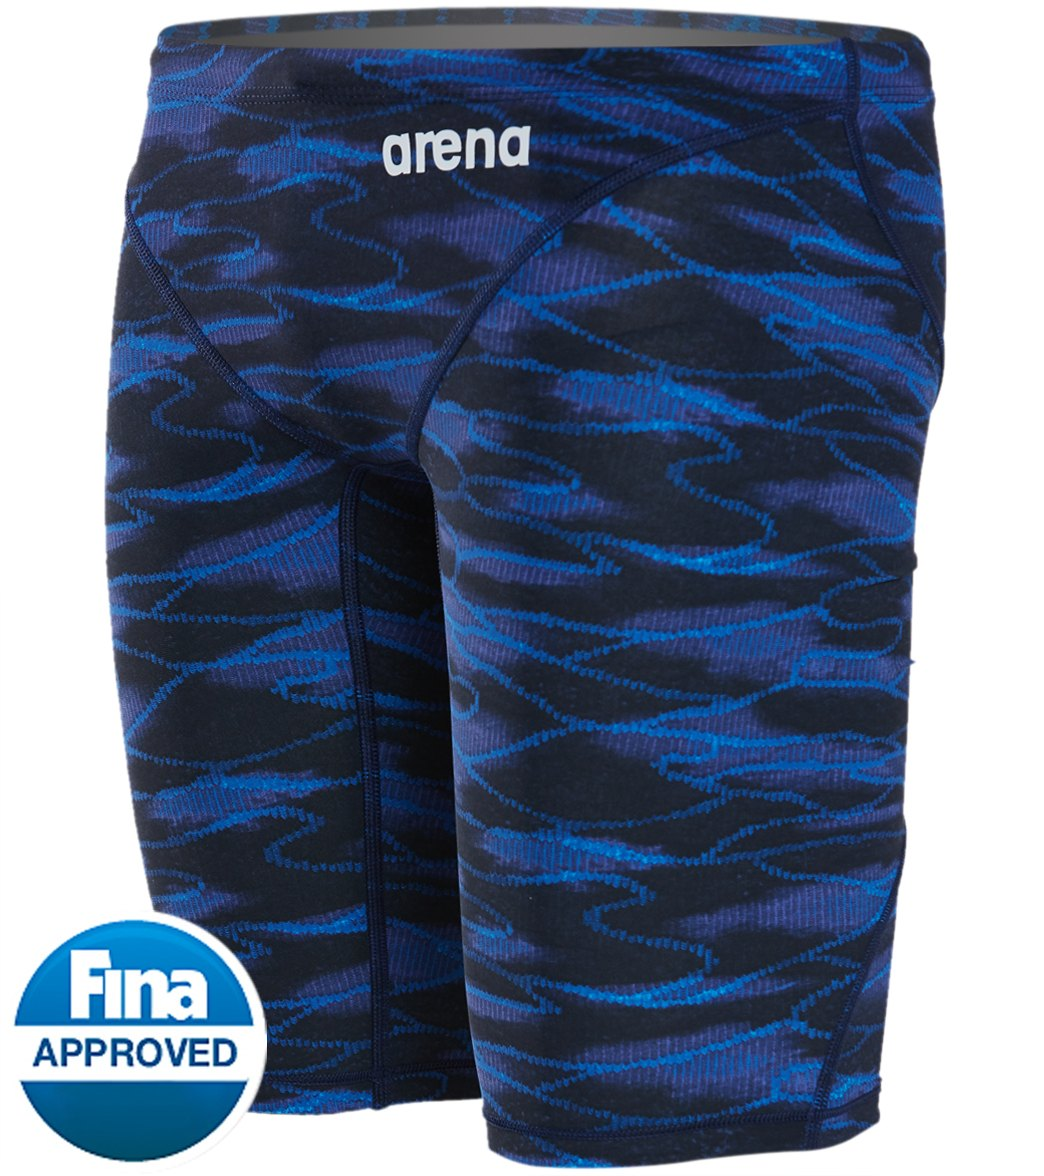 935461945d ... Arena Men's Limited Edition Powerskin ST 2.0 Jammer Tech Suit Swimsuit.  Share